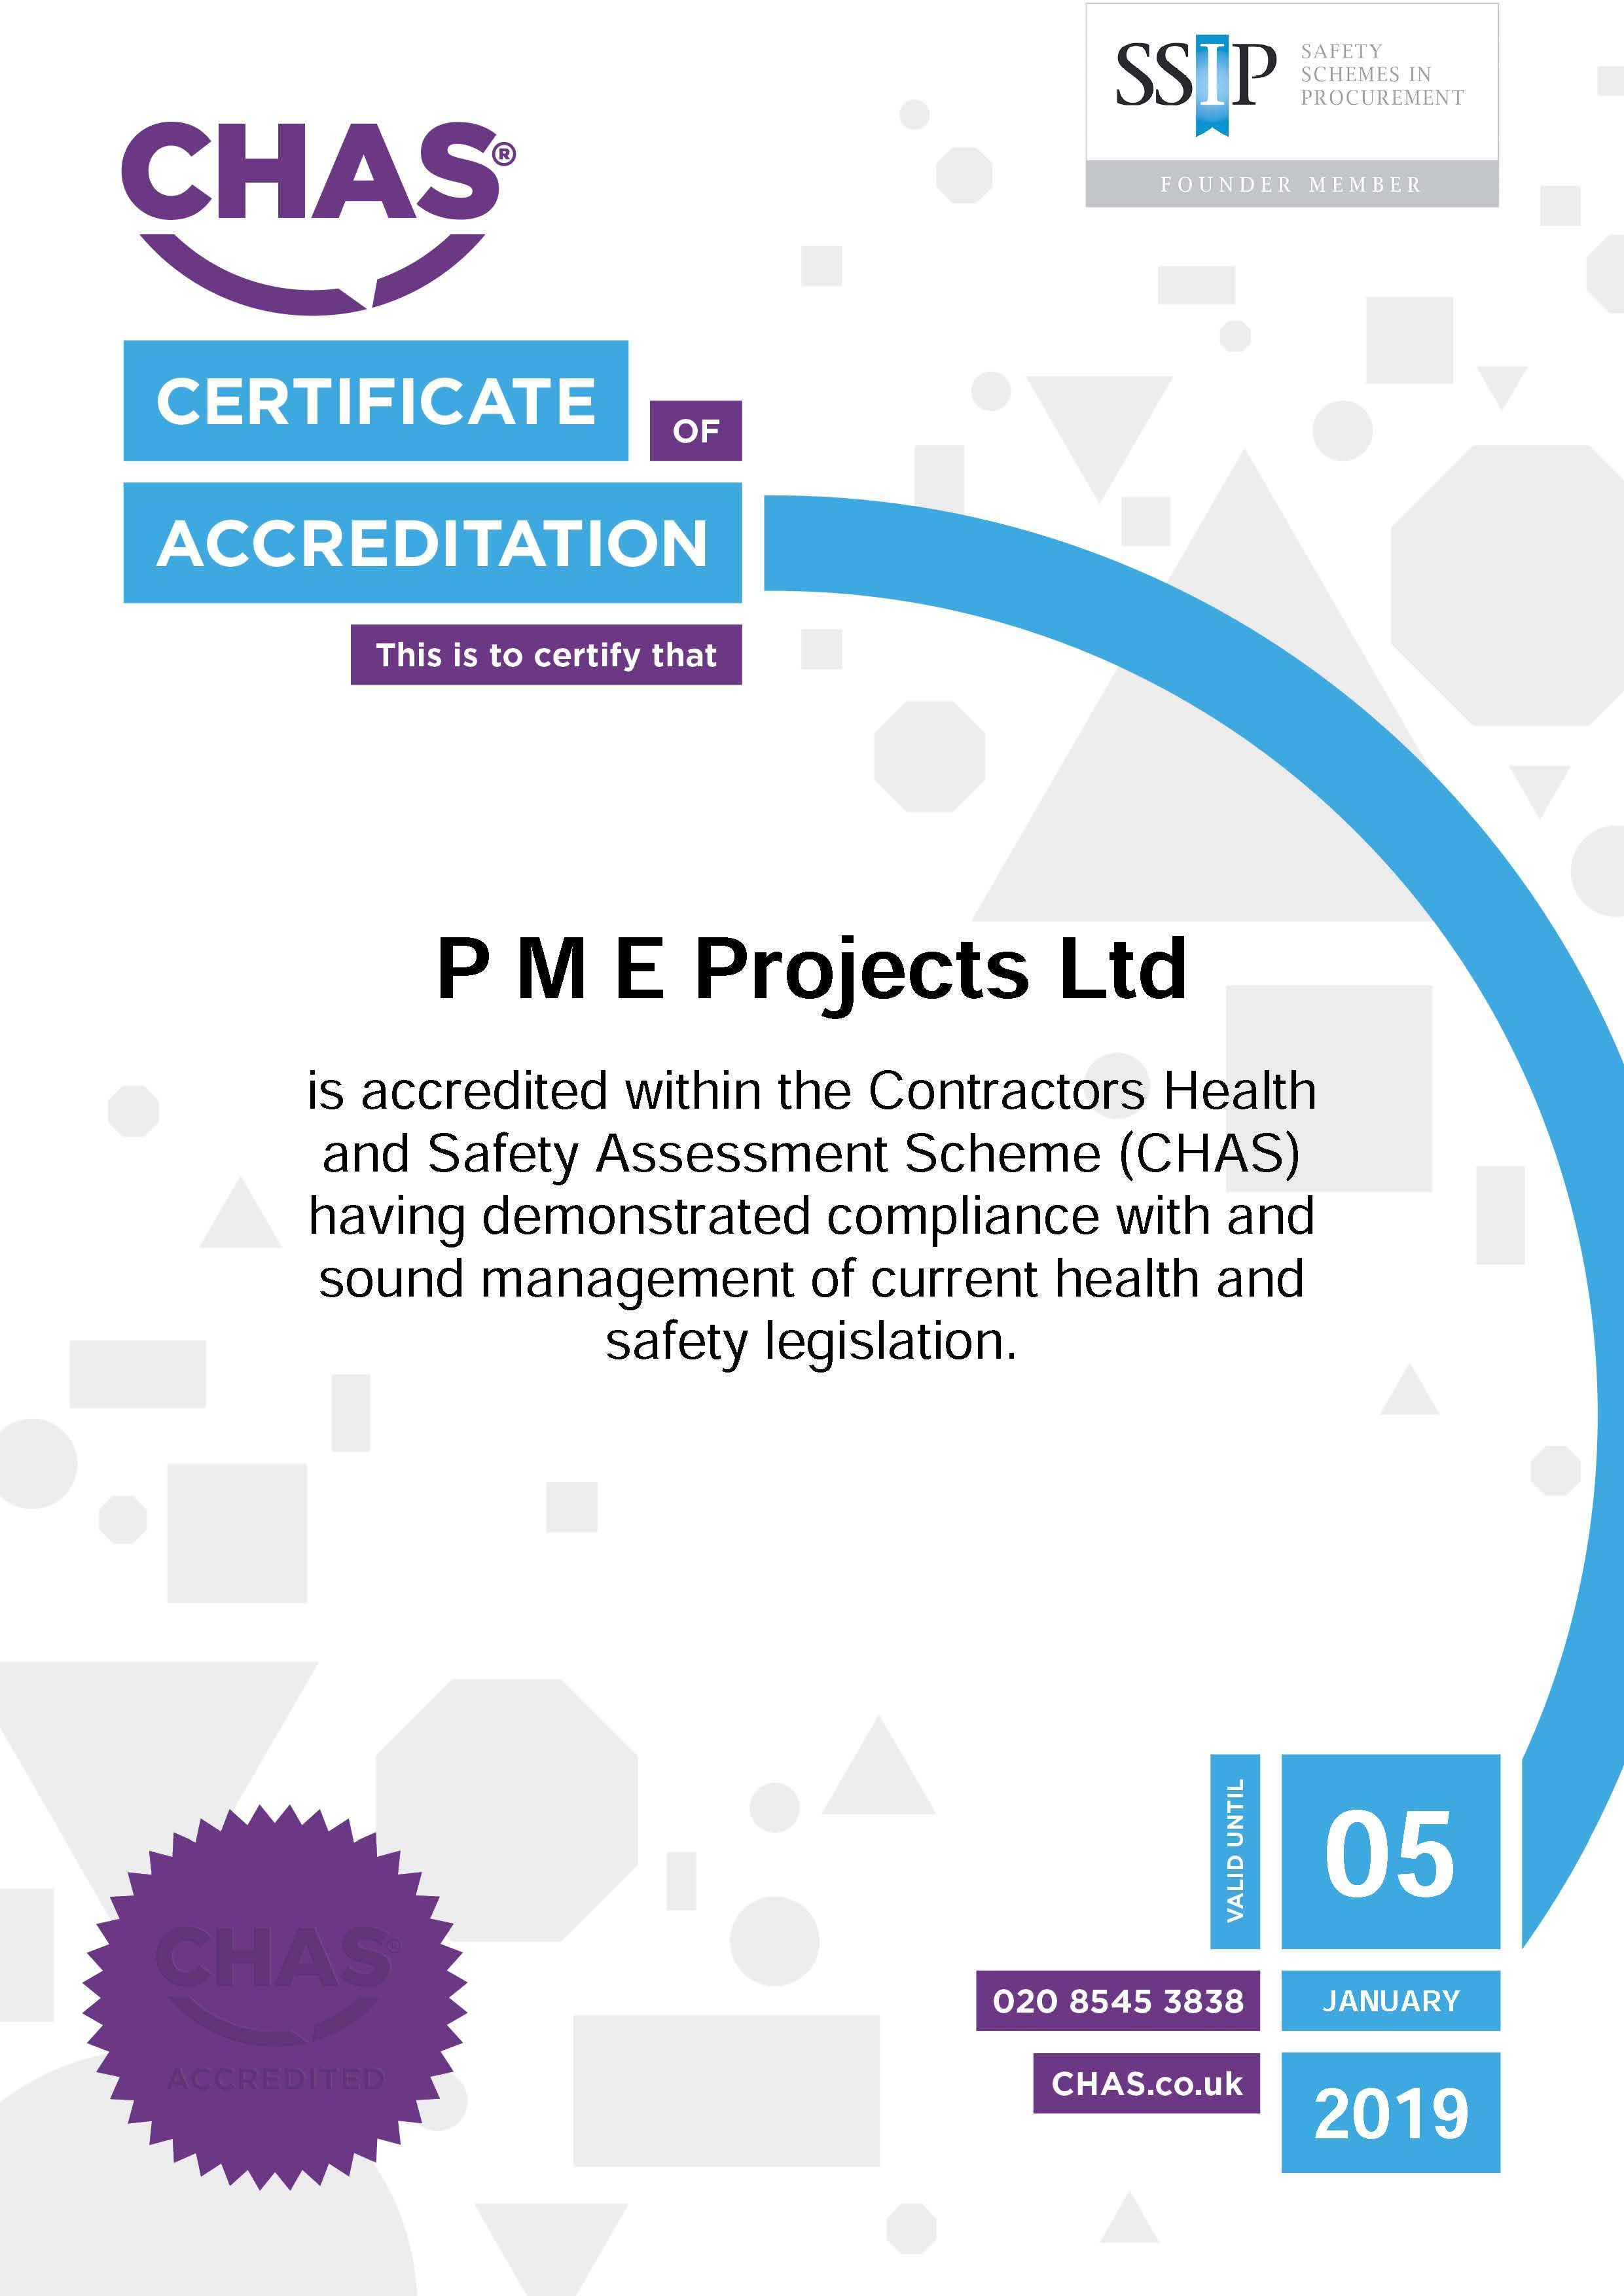 Another year of CHAS Accreditation for PME Projects